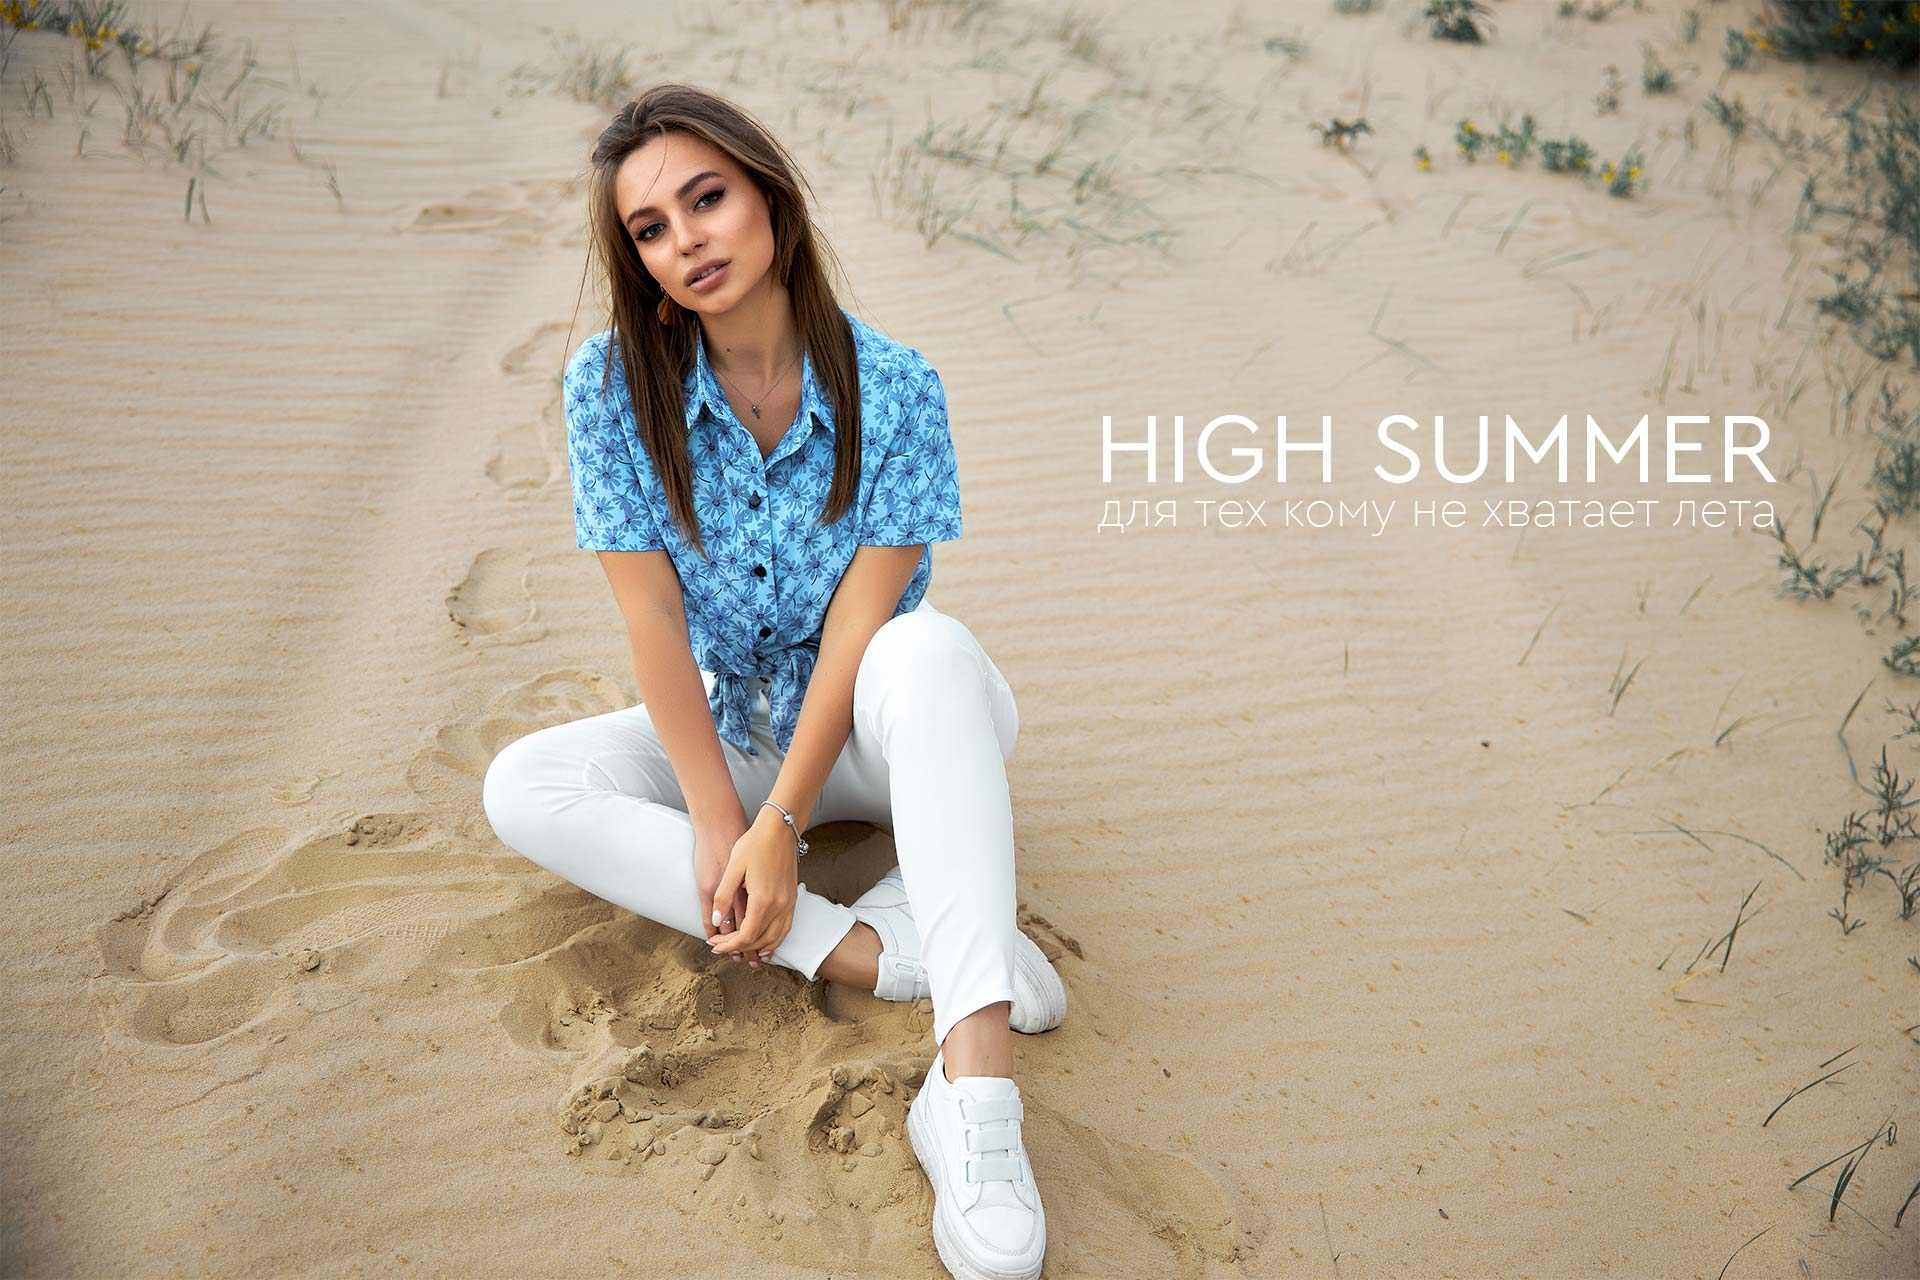 High Summer - campaign